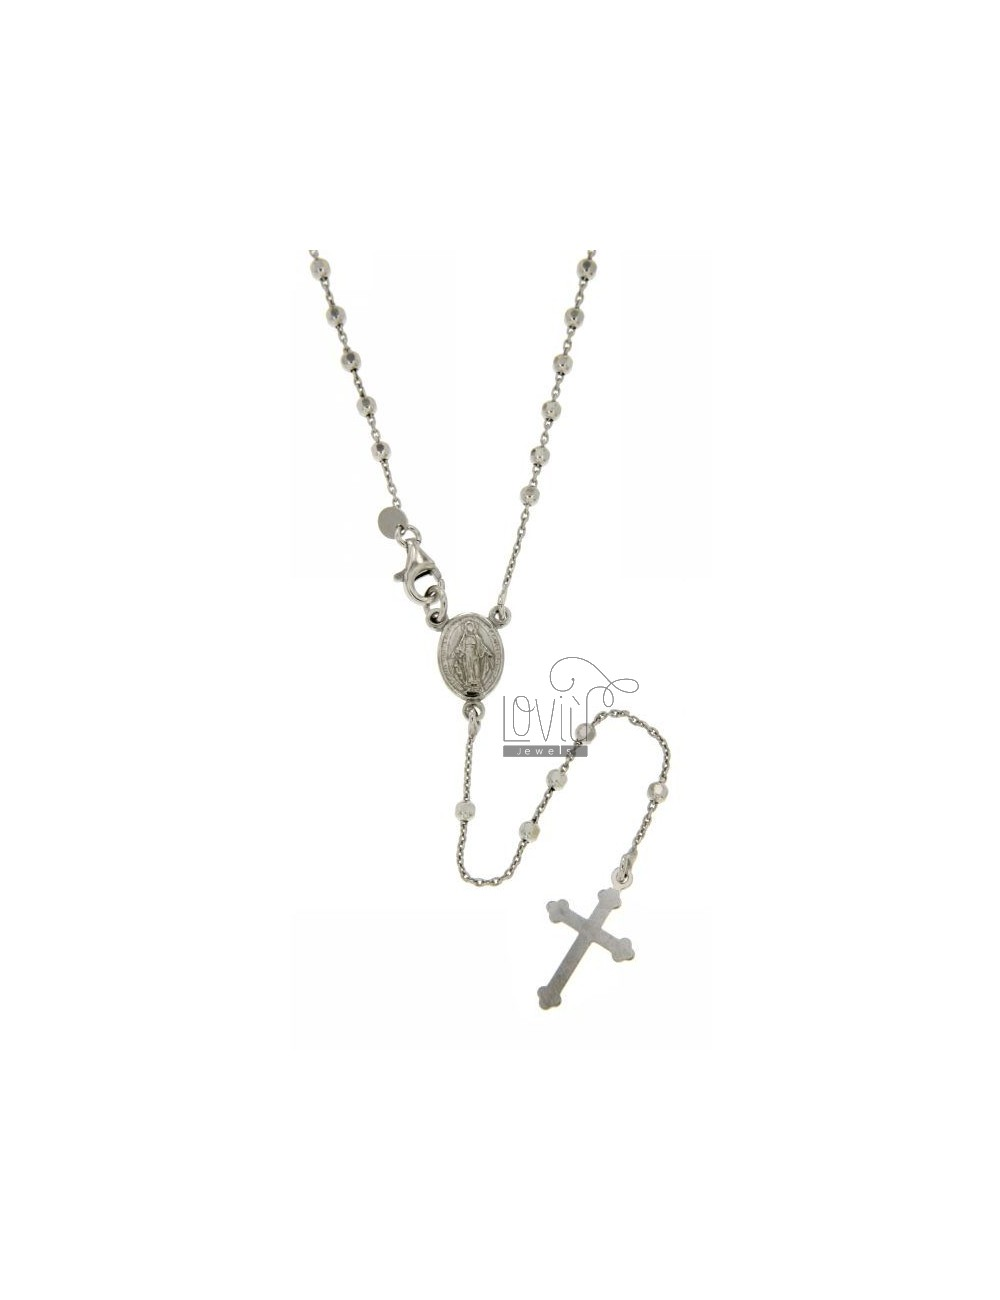 ROSARY NECKLACE WITH CABLE BALL faceted 2.5 MM 45 CM SILVER RHODIUM 925 ‰